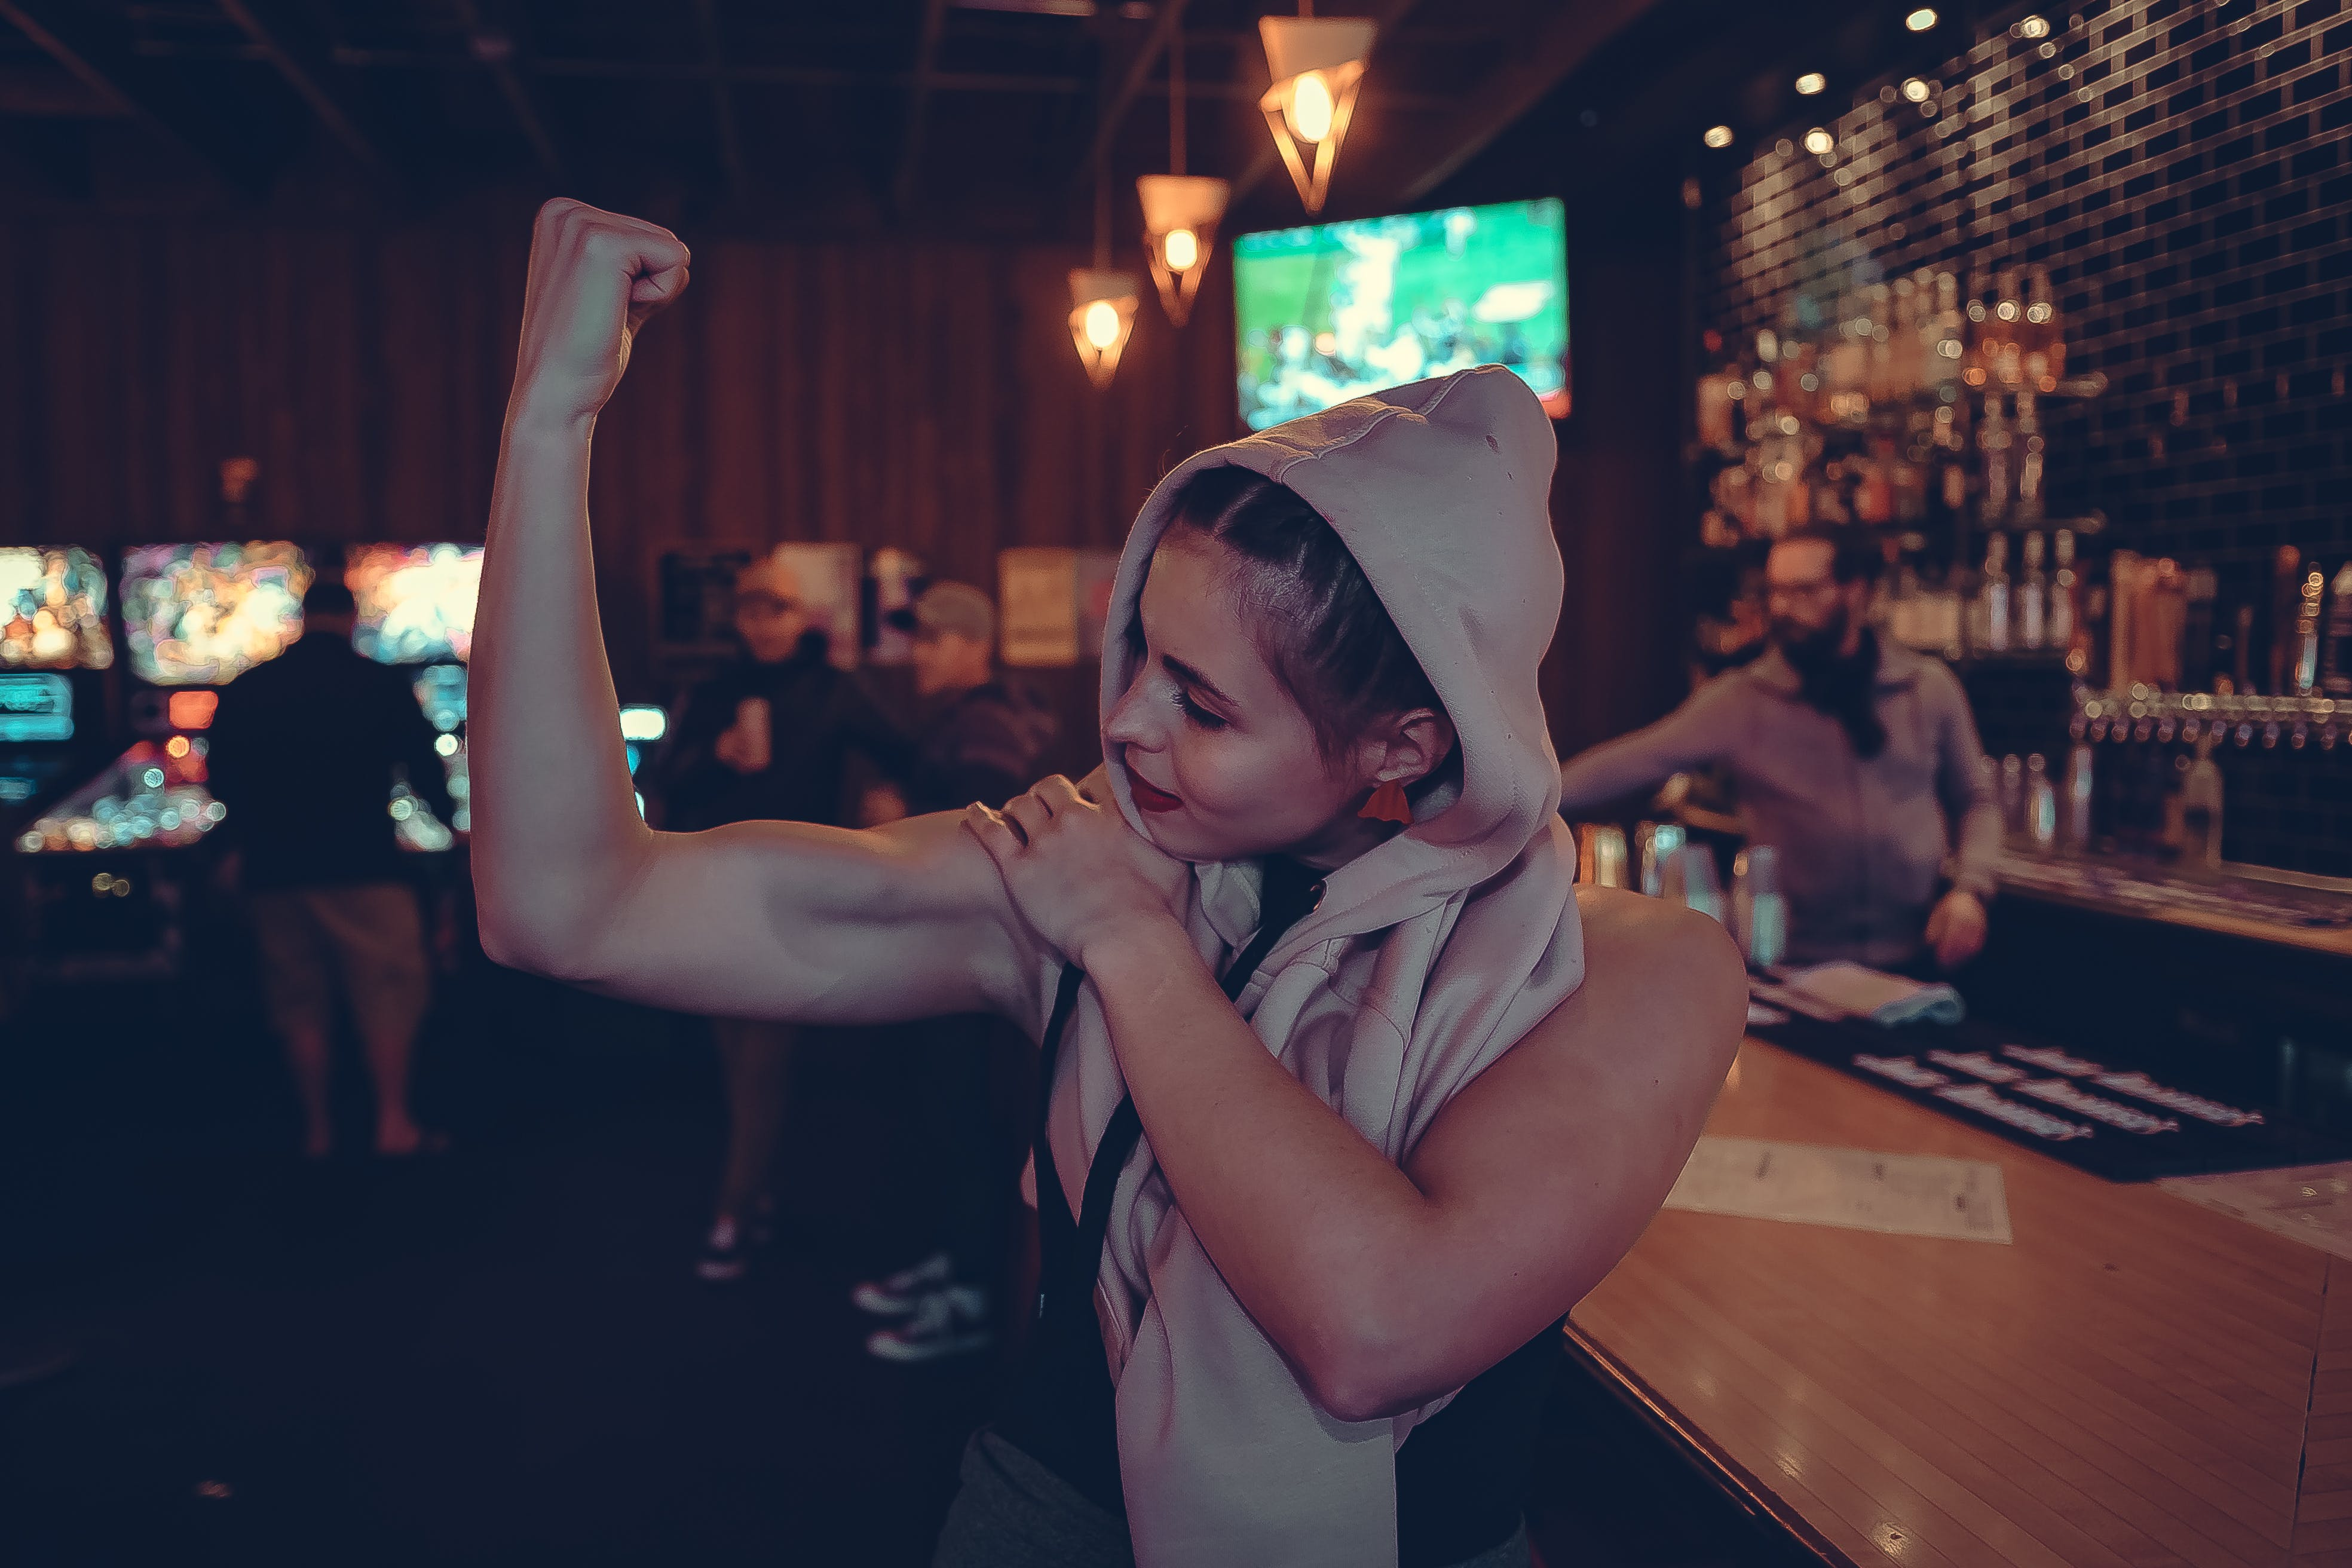 Woman Showing Biceps in Bar